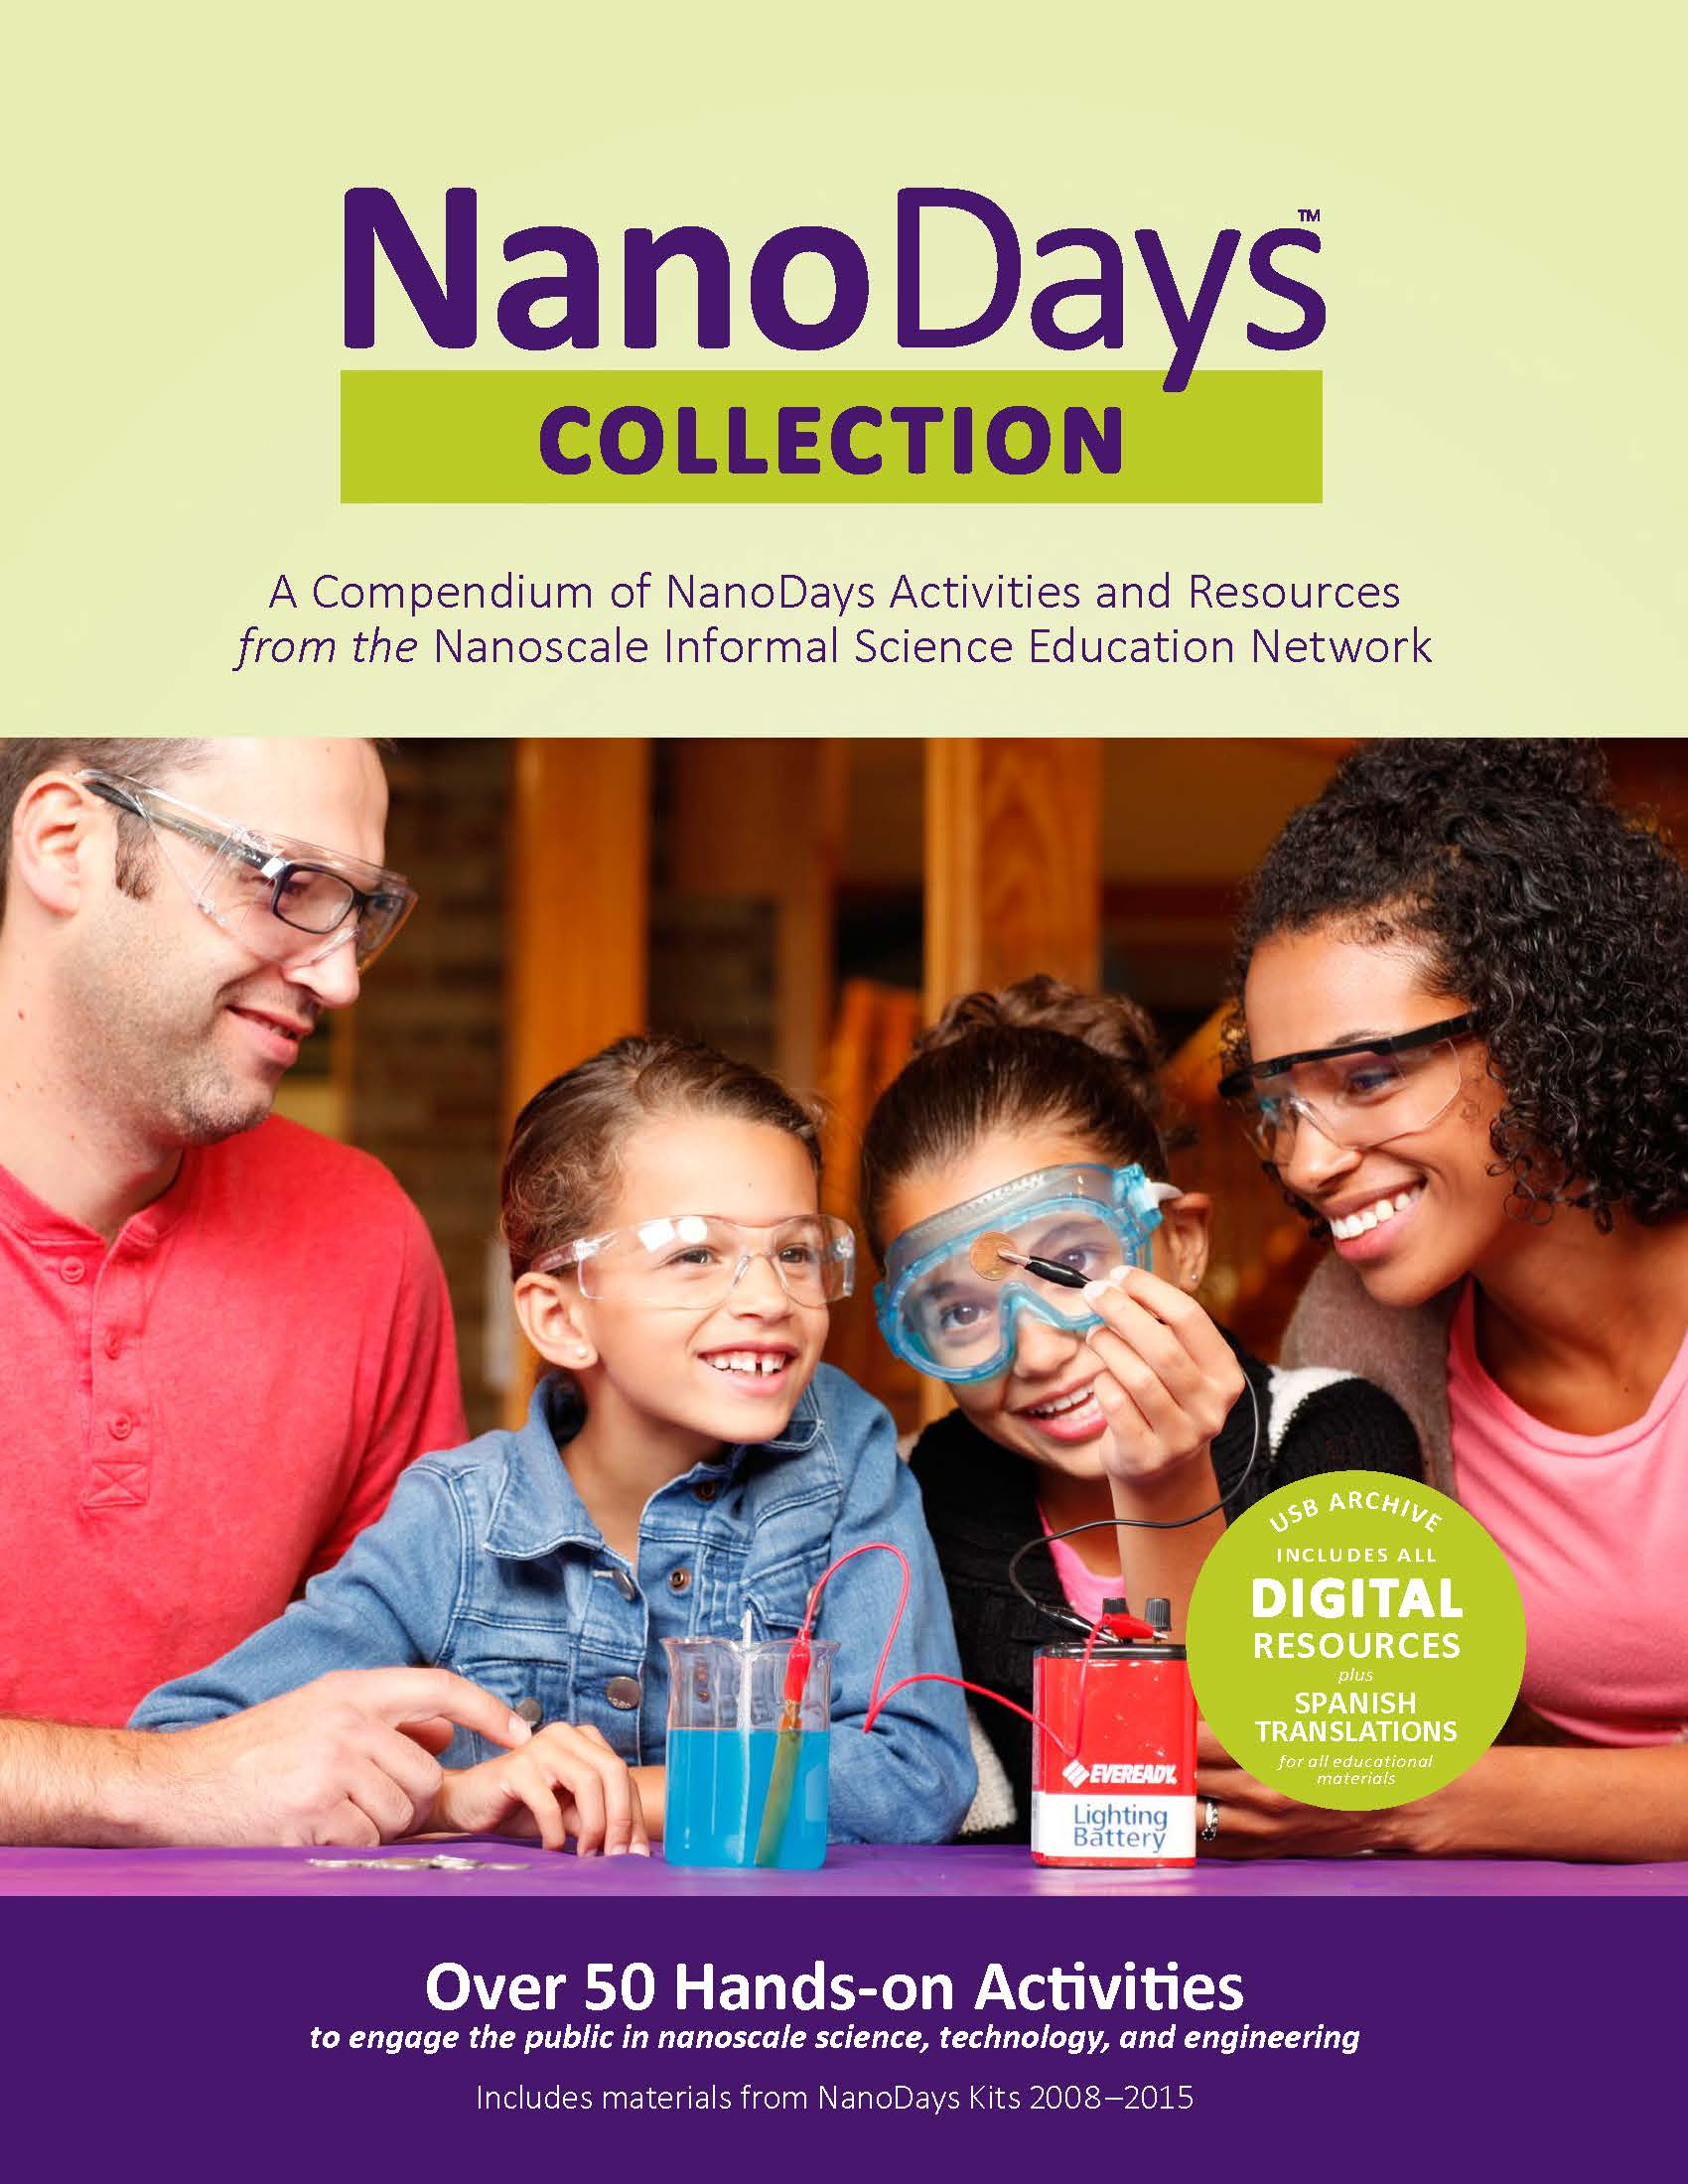 NanoDays Collection compendum cover